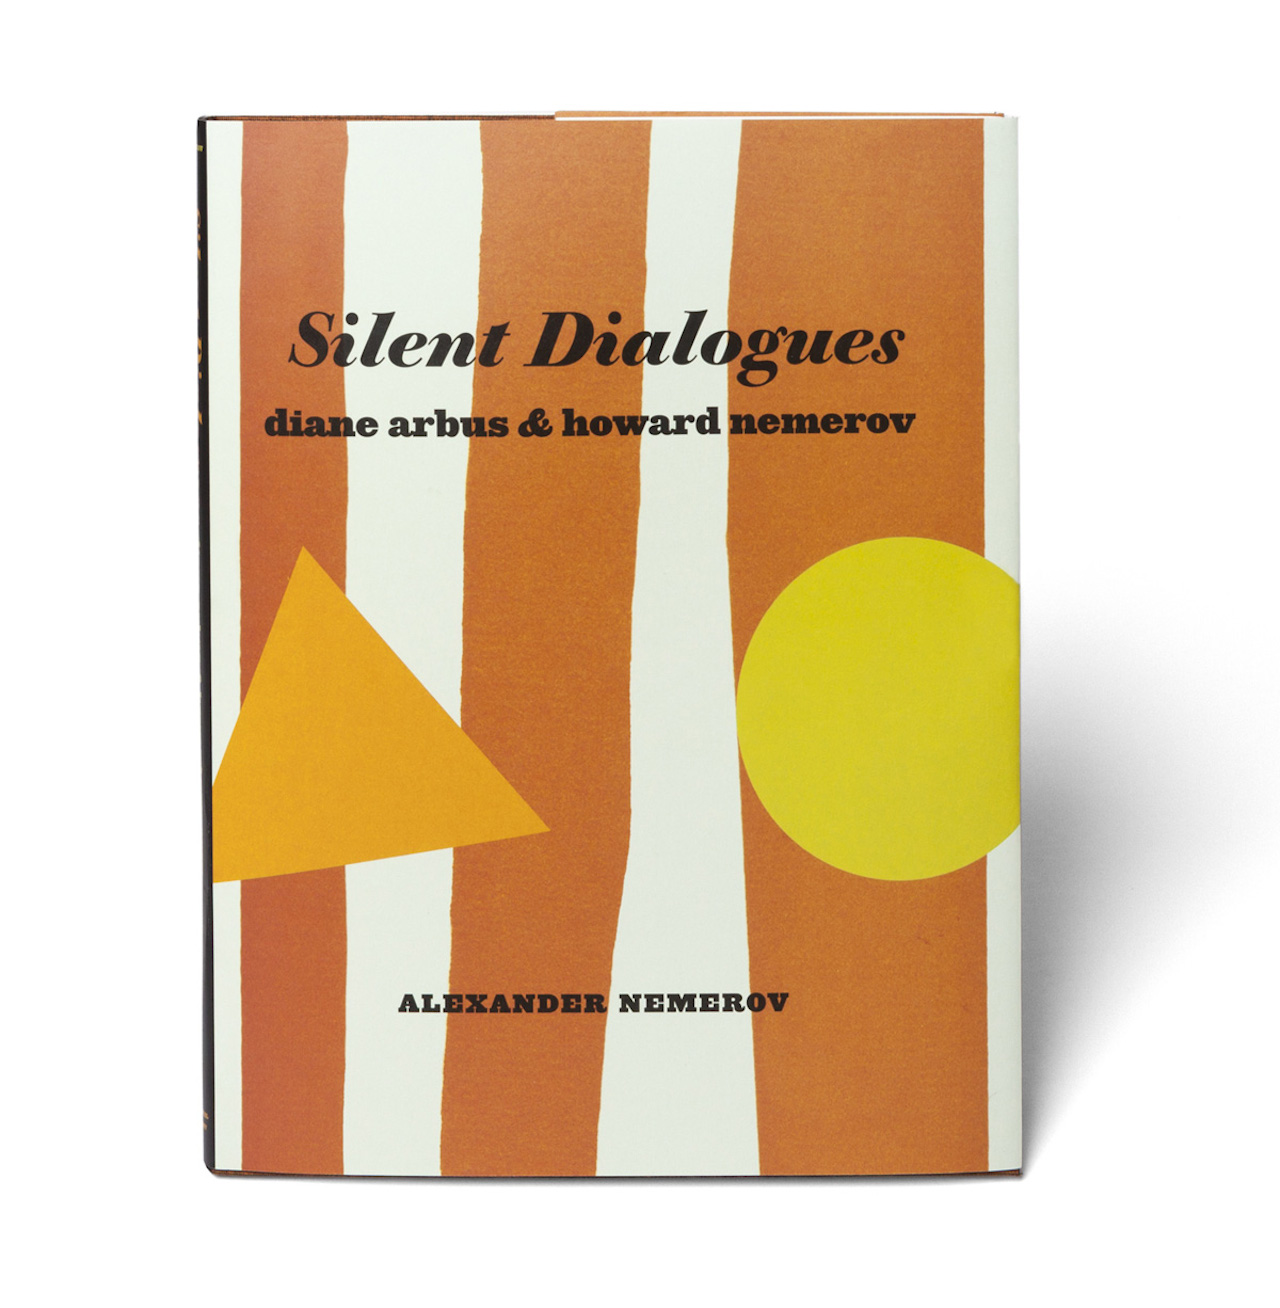 Silent Dialogues_FG_cover 1 (click to enlarge)